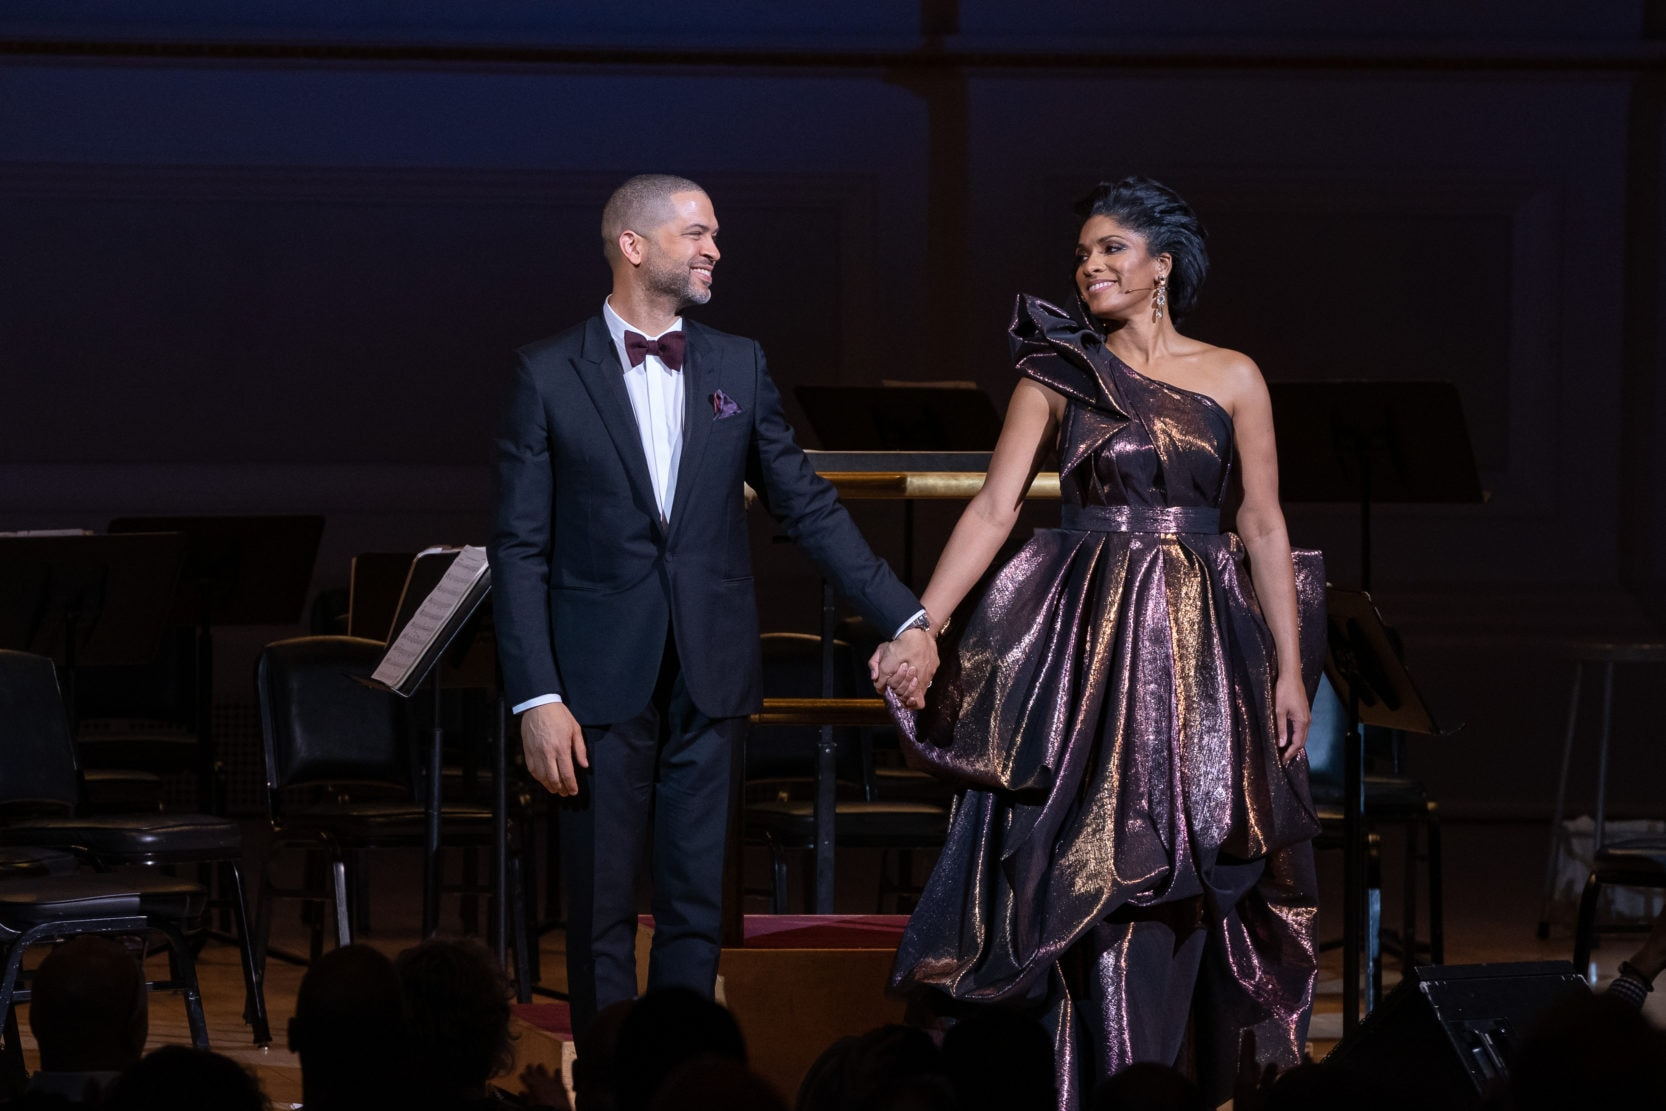 Jason Moran and Alicia Hall Moran at the March 30, 2019 Carnegie Hall performance of 'Two Wings: The Music of Black America in Migration.' Photo by Fadi Kheir.